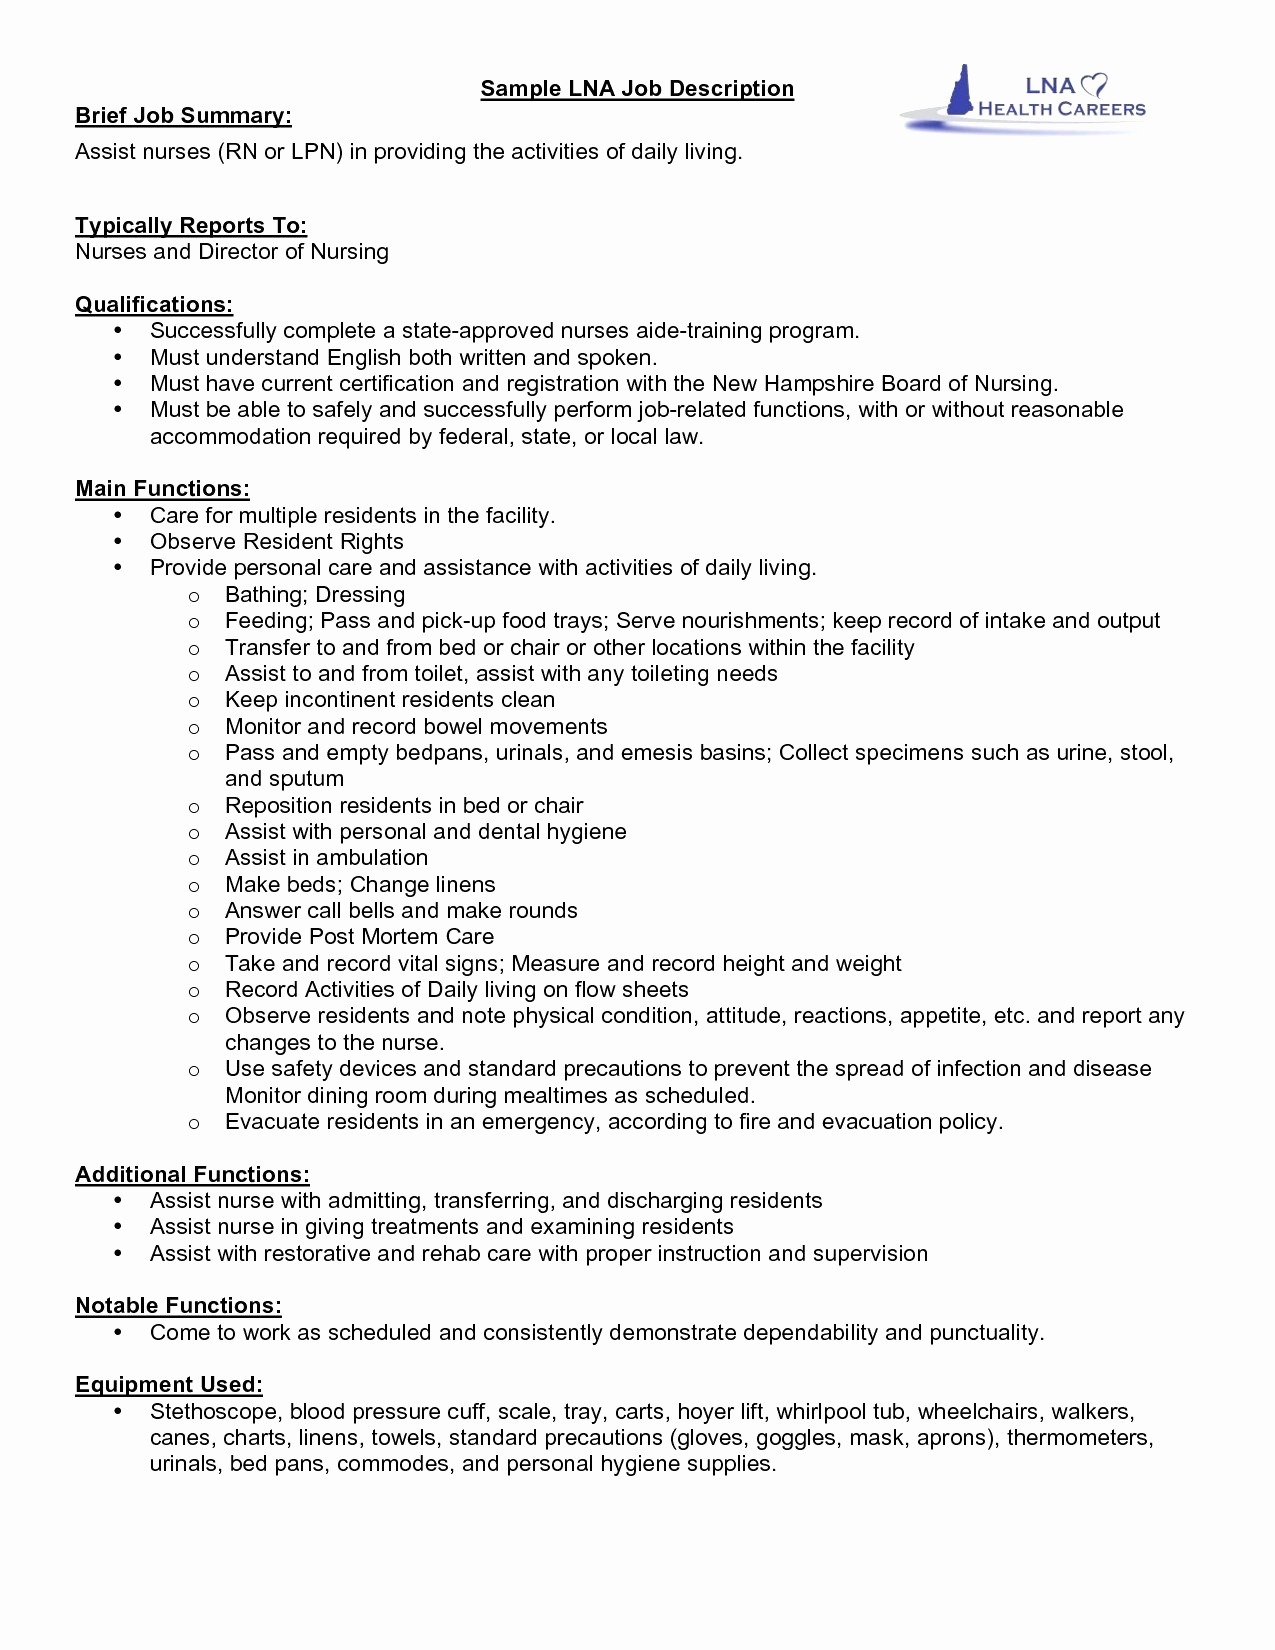 Customer Service Experience Resume - 30 Customer Service Experience Resume